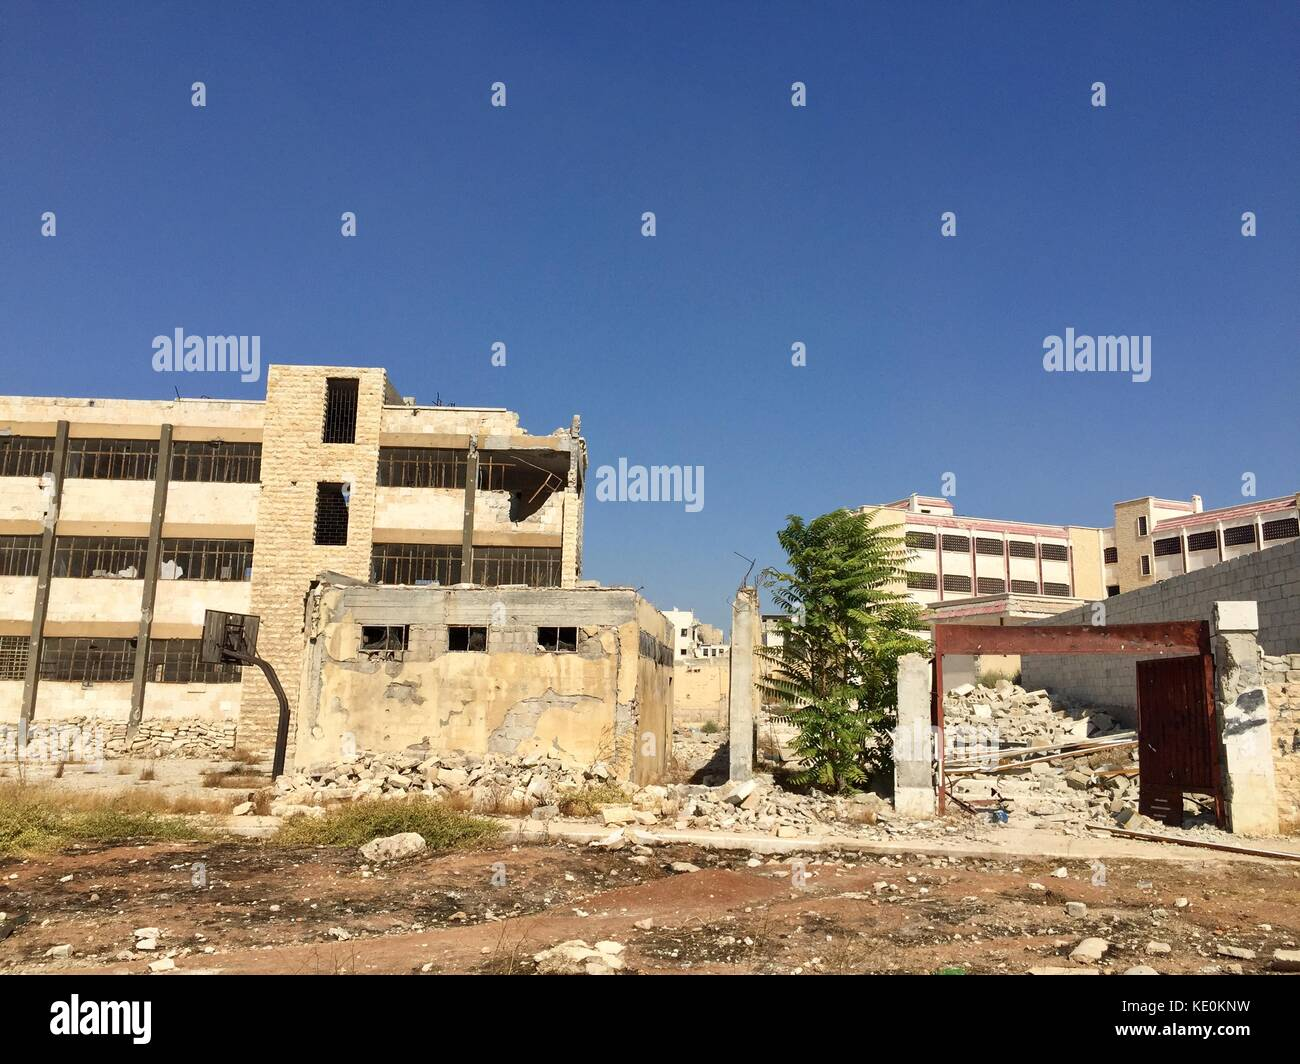 (171017) -- ALEPPO, Oct. 17, 2017 (Xinhua) -- Photo taken on Oct. 12, 2017 shows the destroyed buildings in Ibrahim - Stock Image